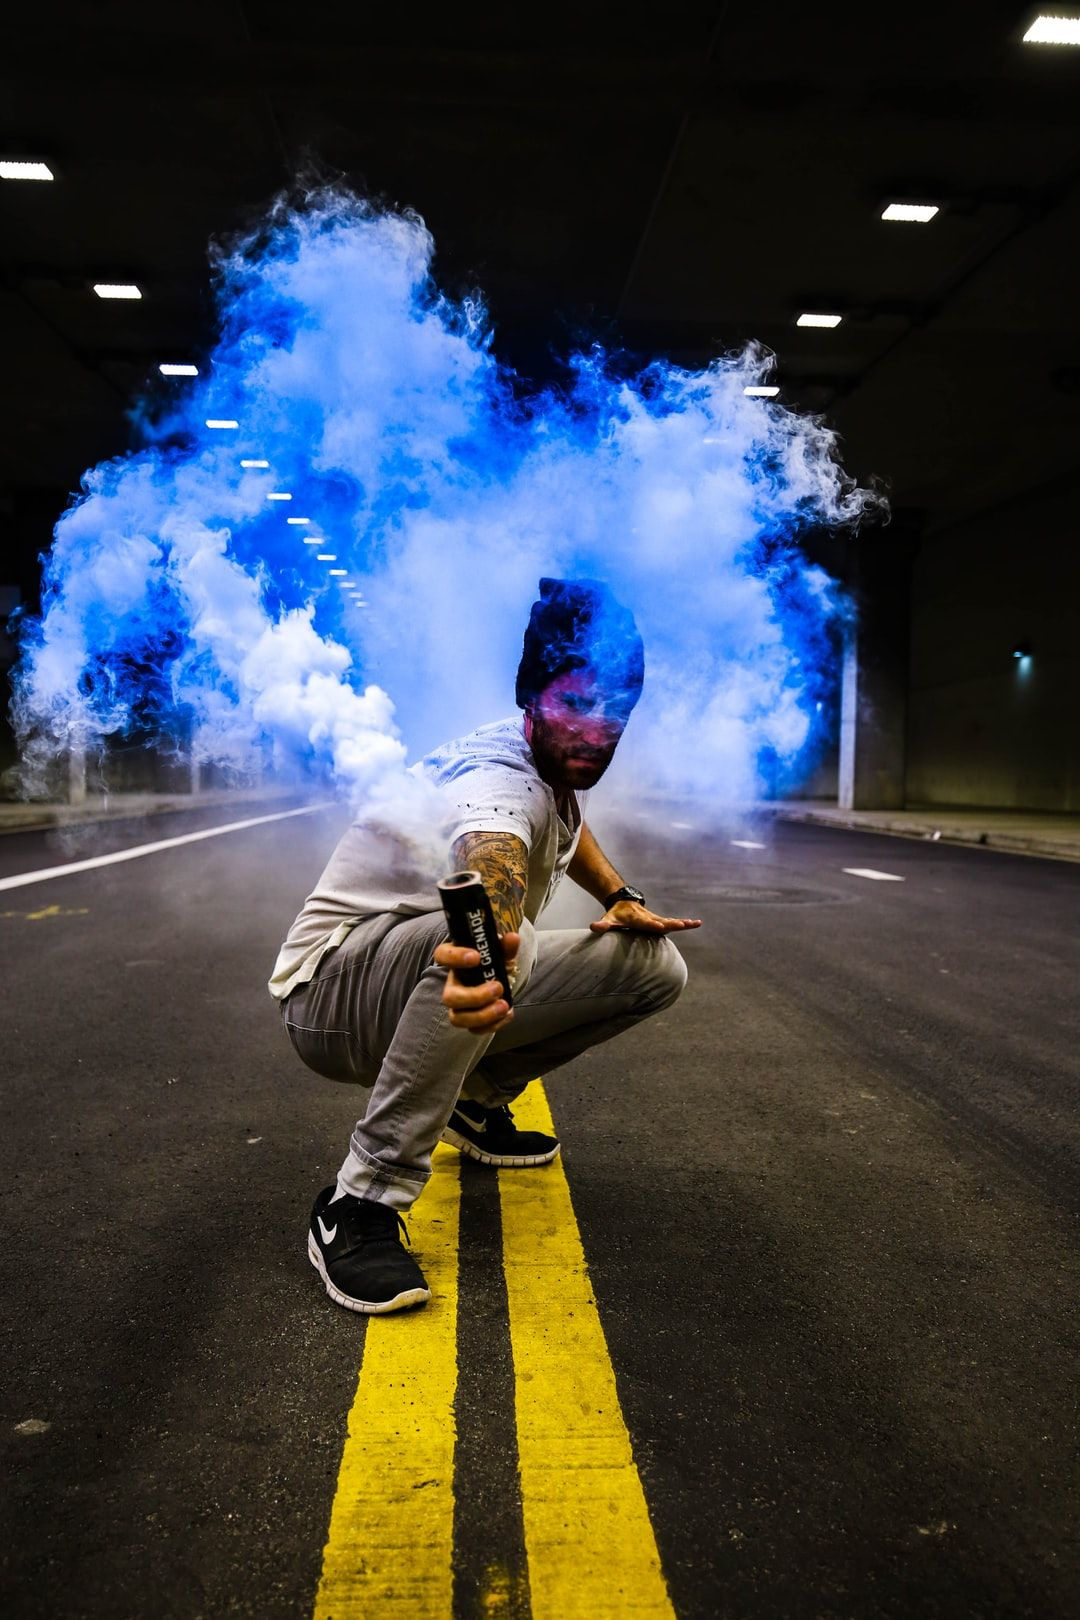 Man Holding Black Tube With Blue Smoke In The Middle Of Road Fashion Designer List Career In Fashion Designing Become A Fashion Designer